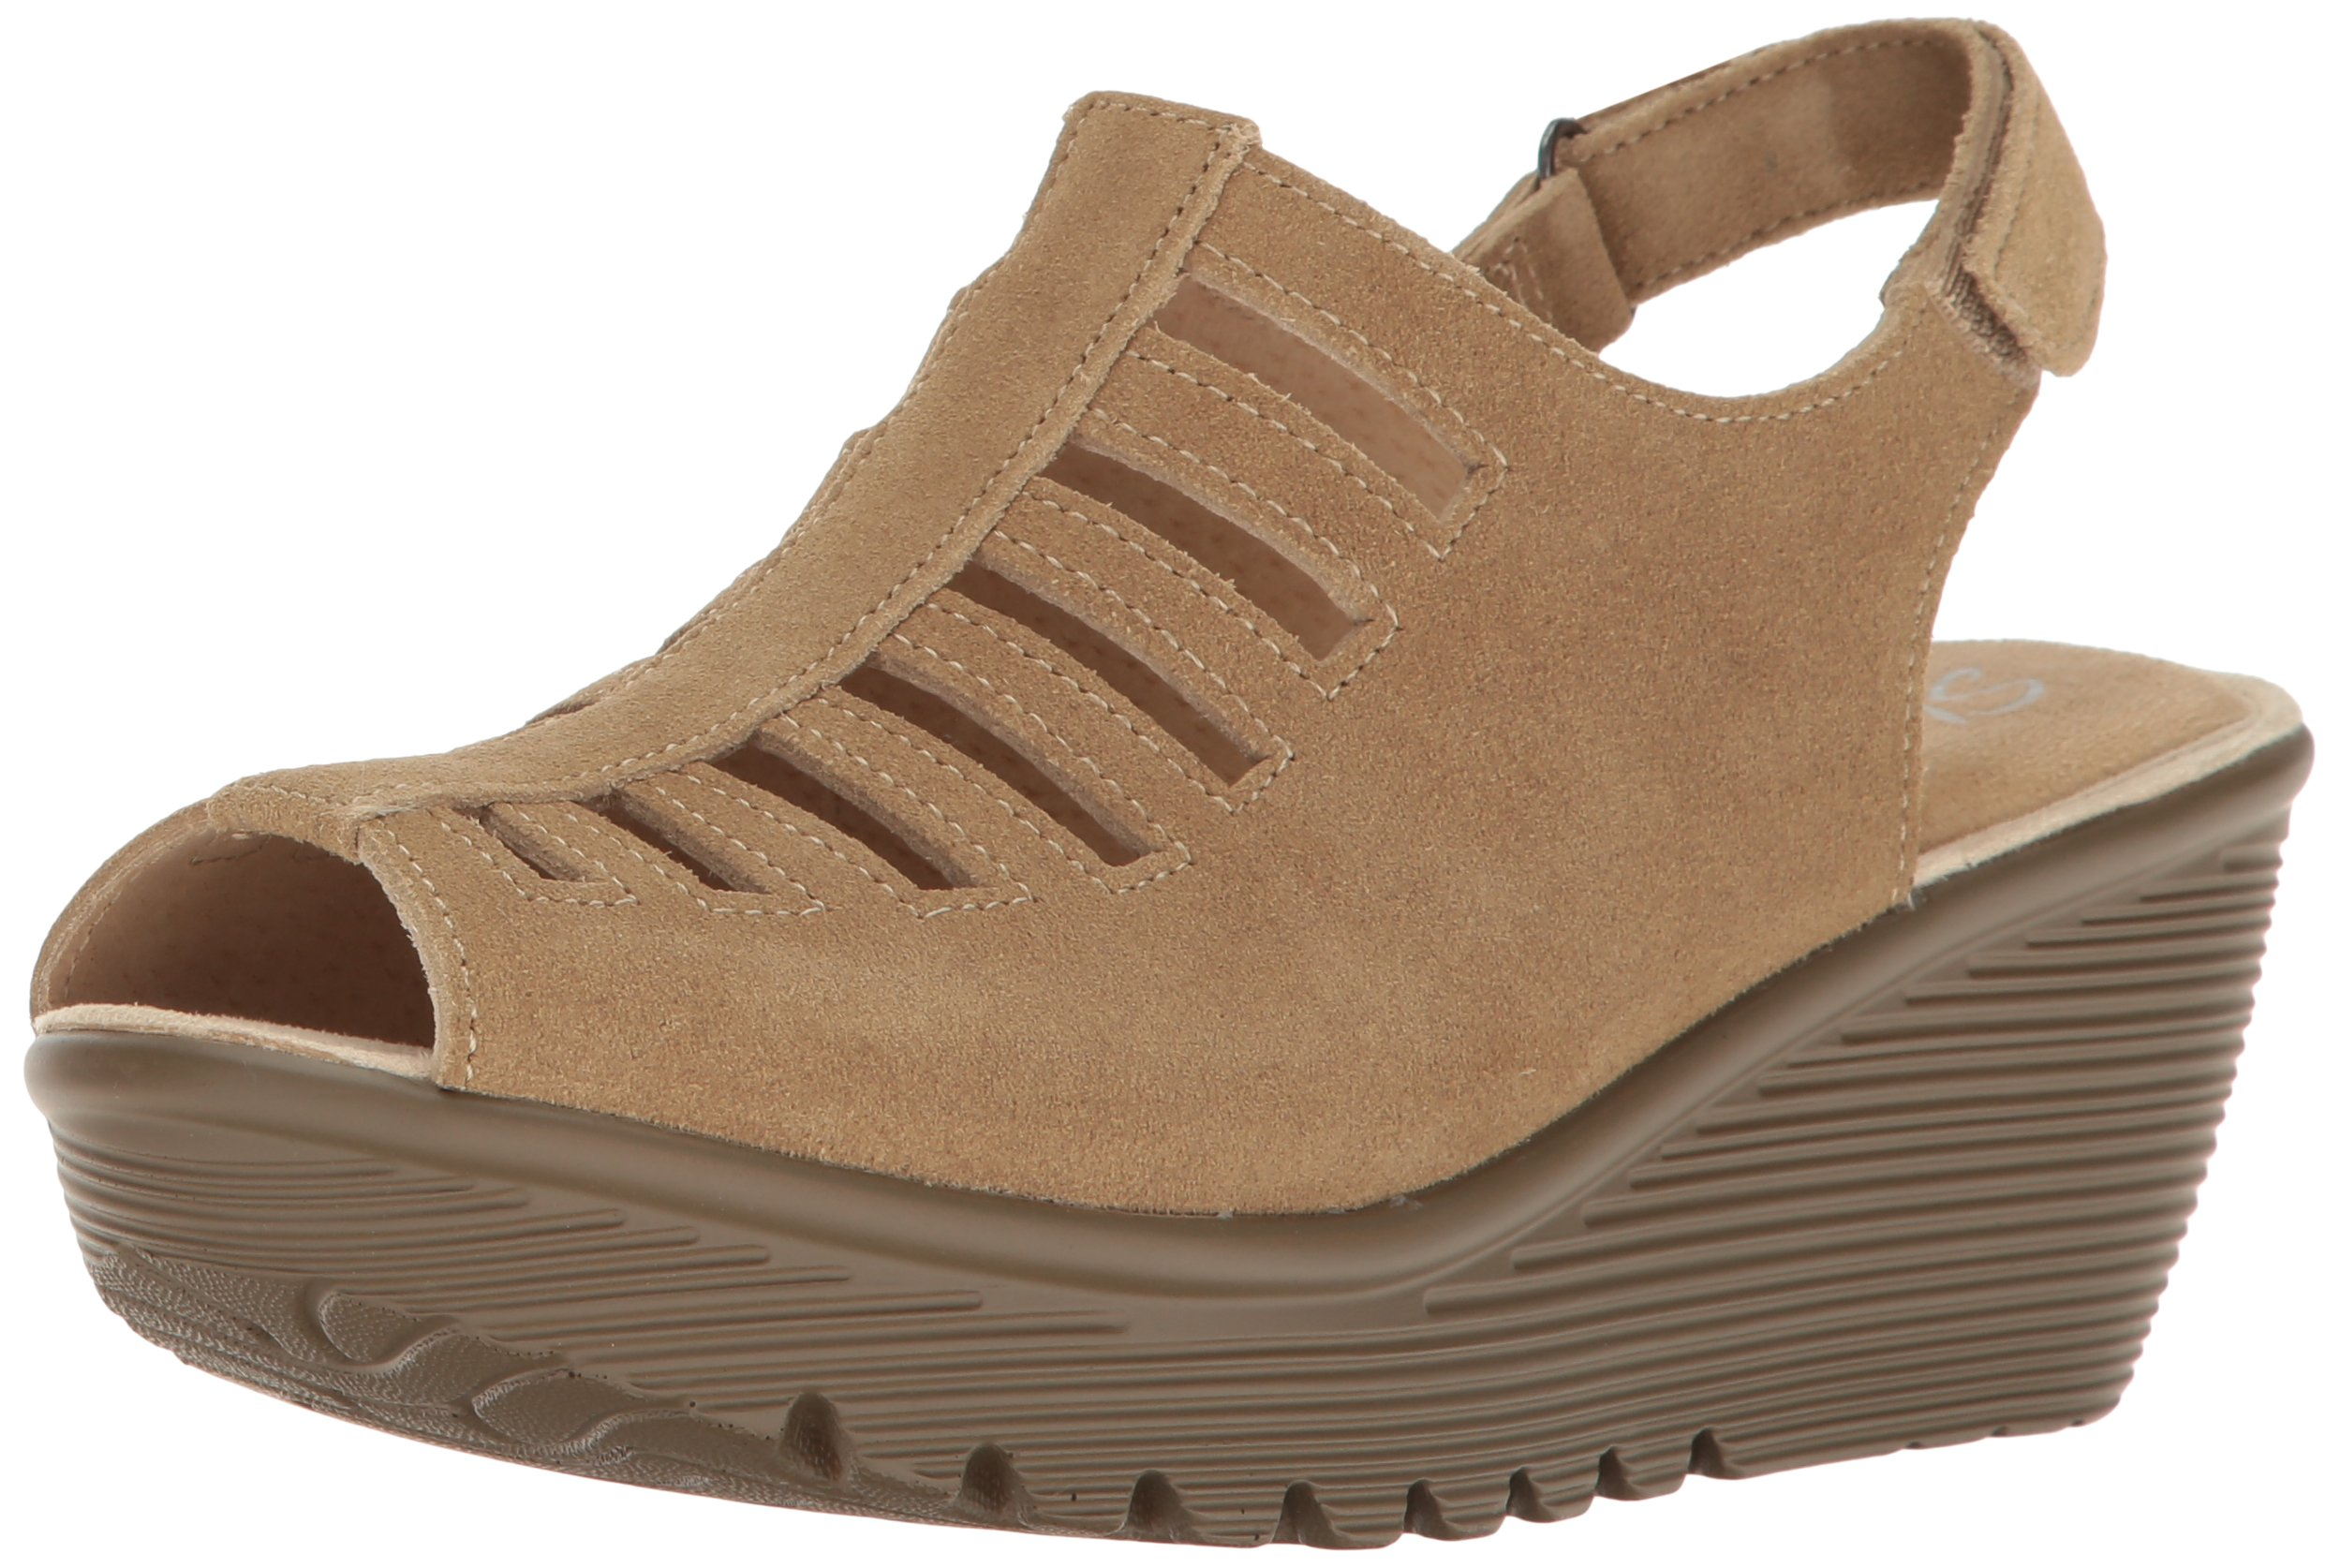 Skechers Women's Parallel-Trapezoid Wedge Sandal,Dark Natural,6 M US